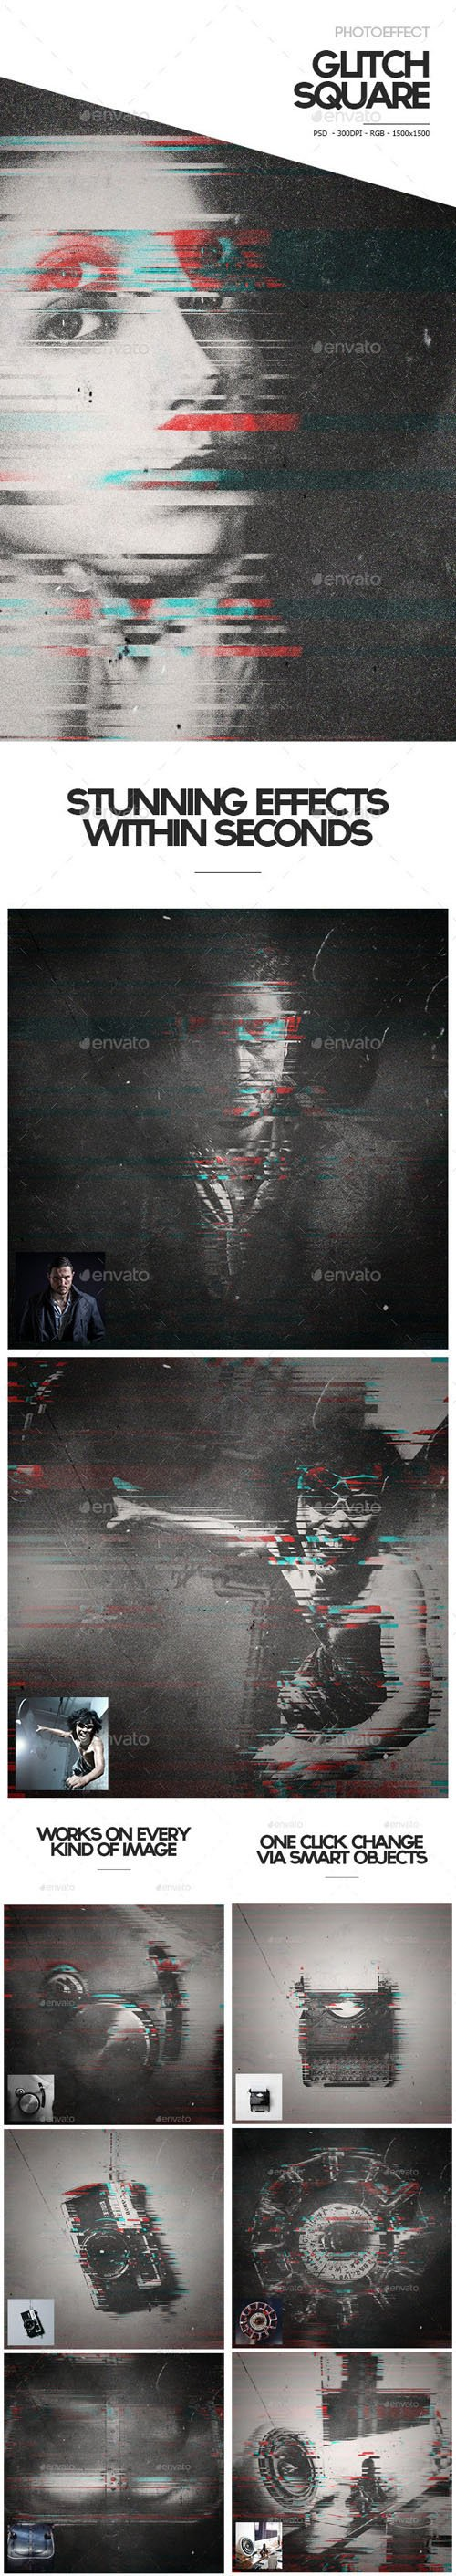 Glitch Square Photoeffect - Graphicriver 11040111